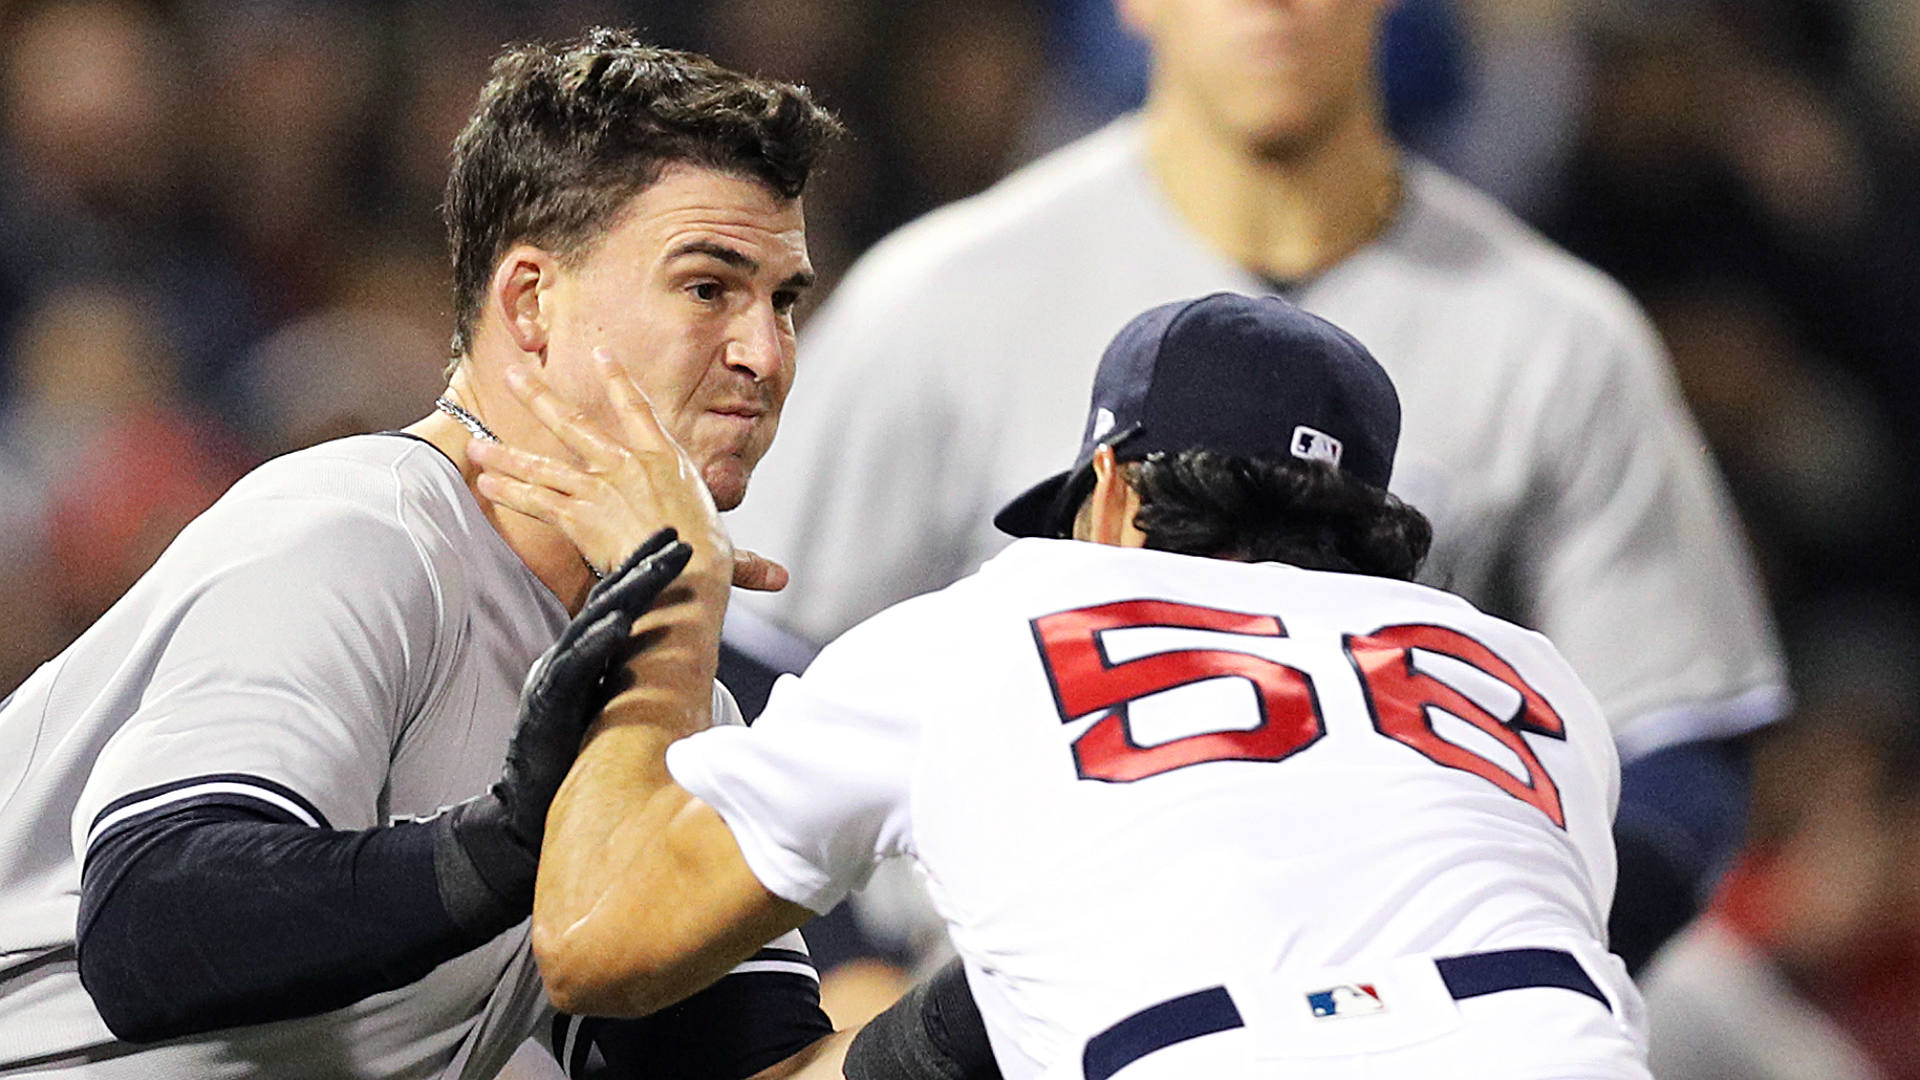 Baseball fights highlight a double standard in sports ...